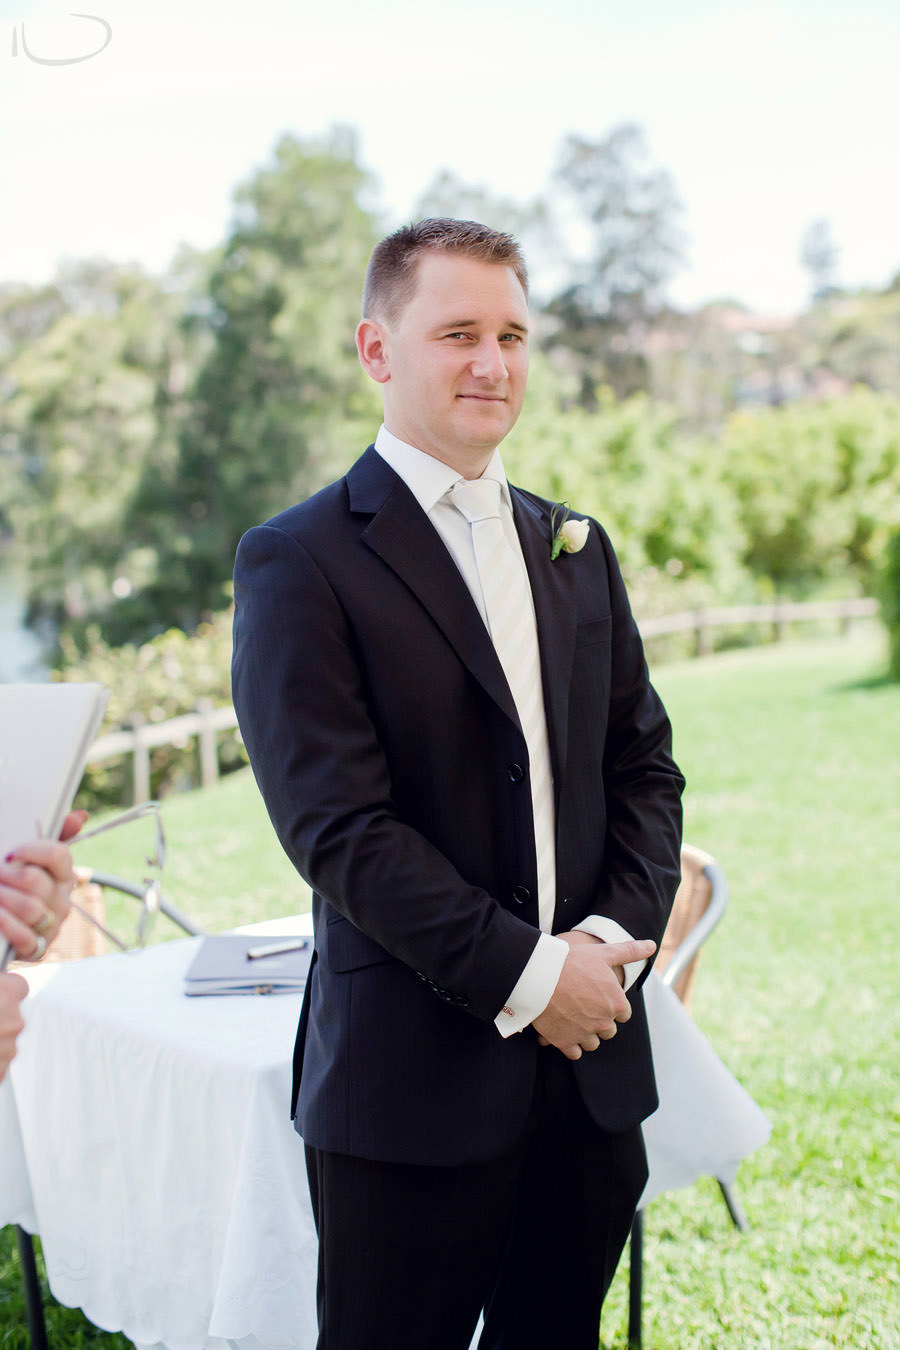 Banjo Paterson Gladesville Wedding Photographer: Groom waiting for bride